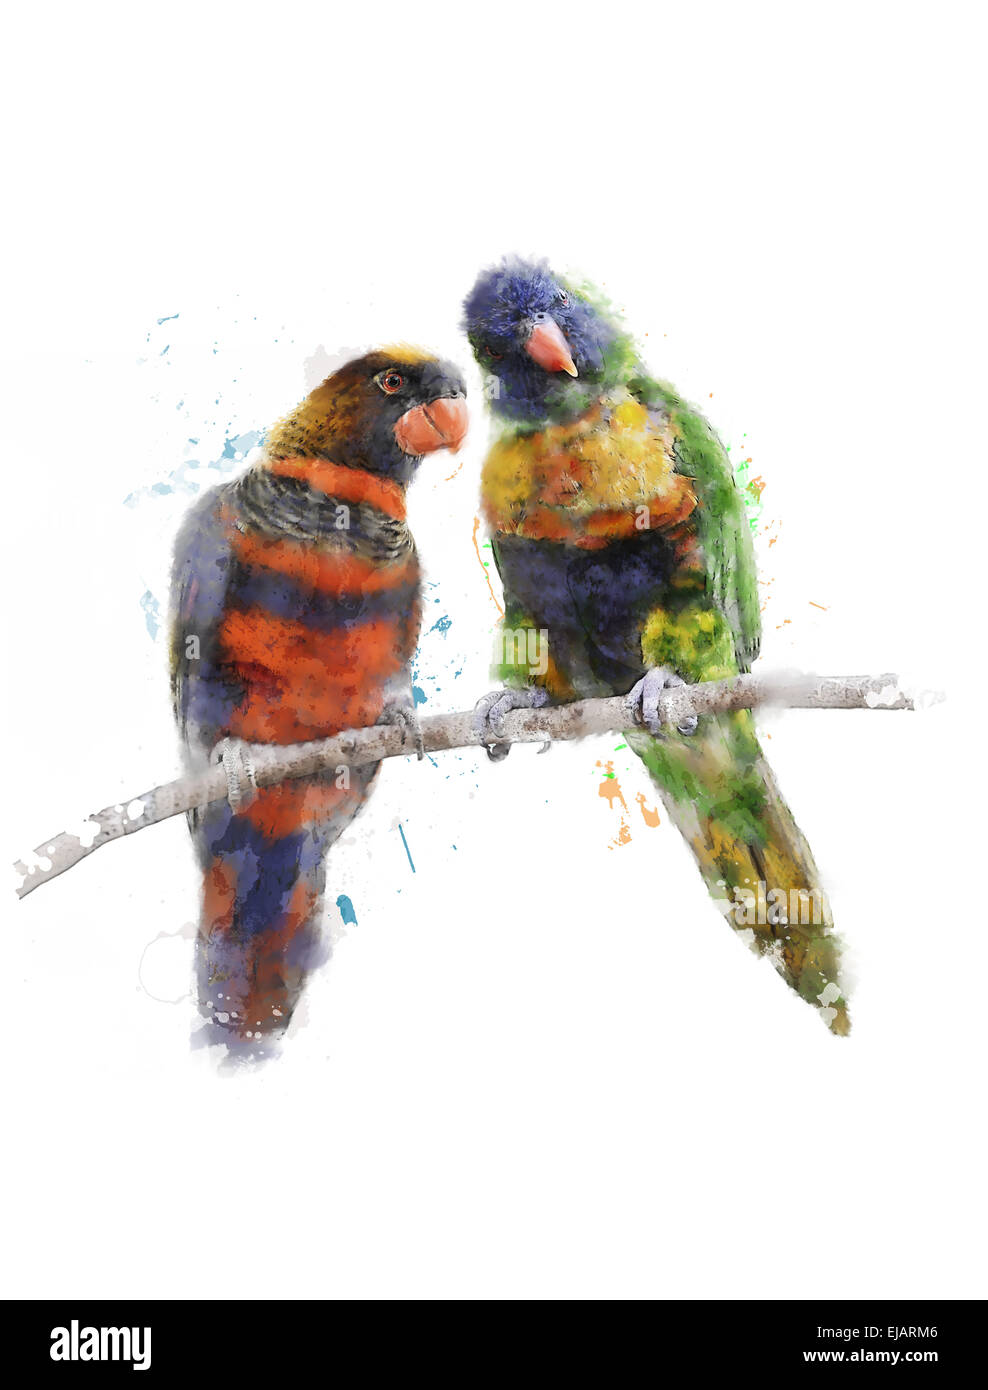 Watercolor Image Of Colorful Parrots Stock Photo 80143398 Alamy